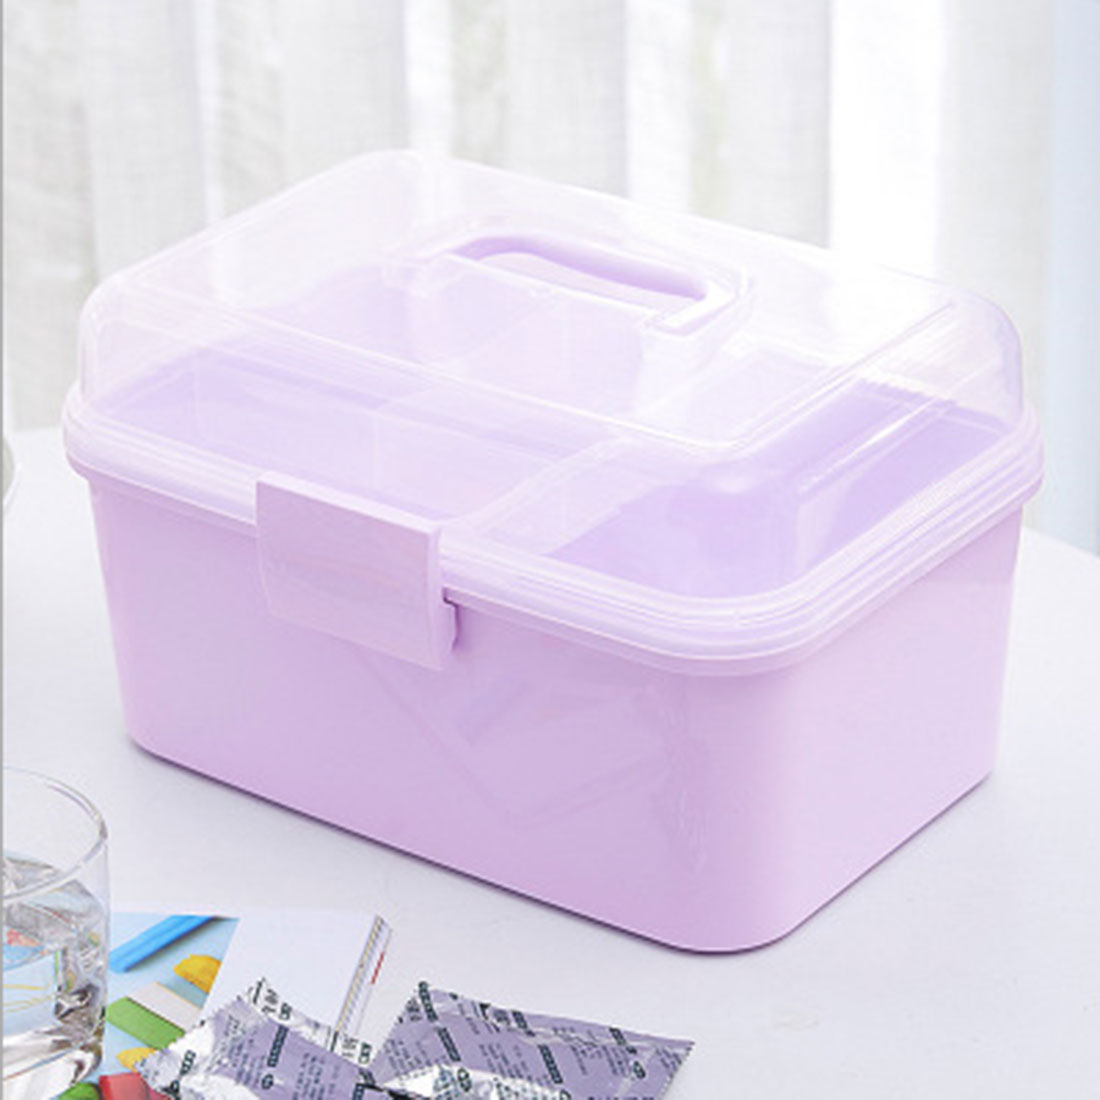 Storage Box Portable Hand-held Double Layered PP Emergency Household Medical Box Cabinet Office Desk Storage Organizer